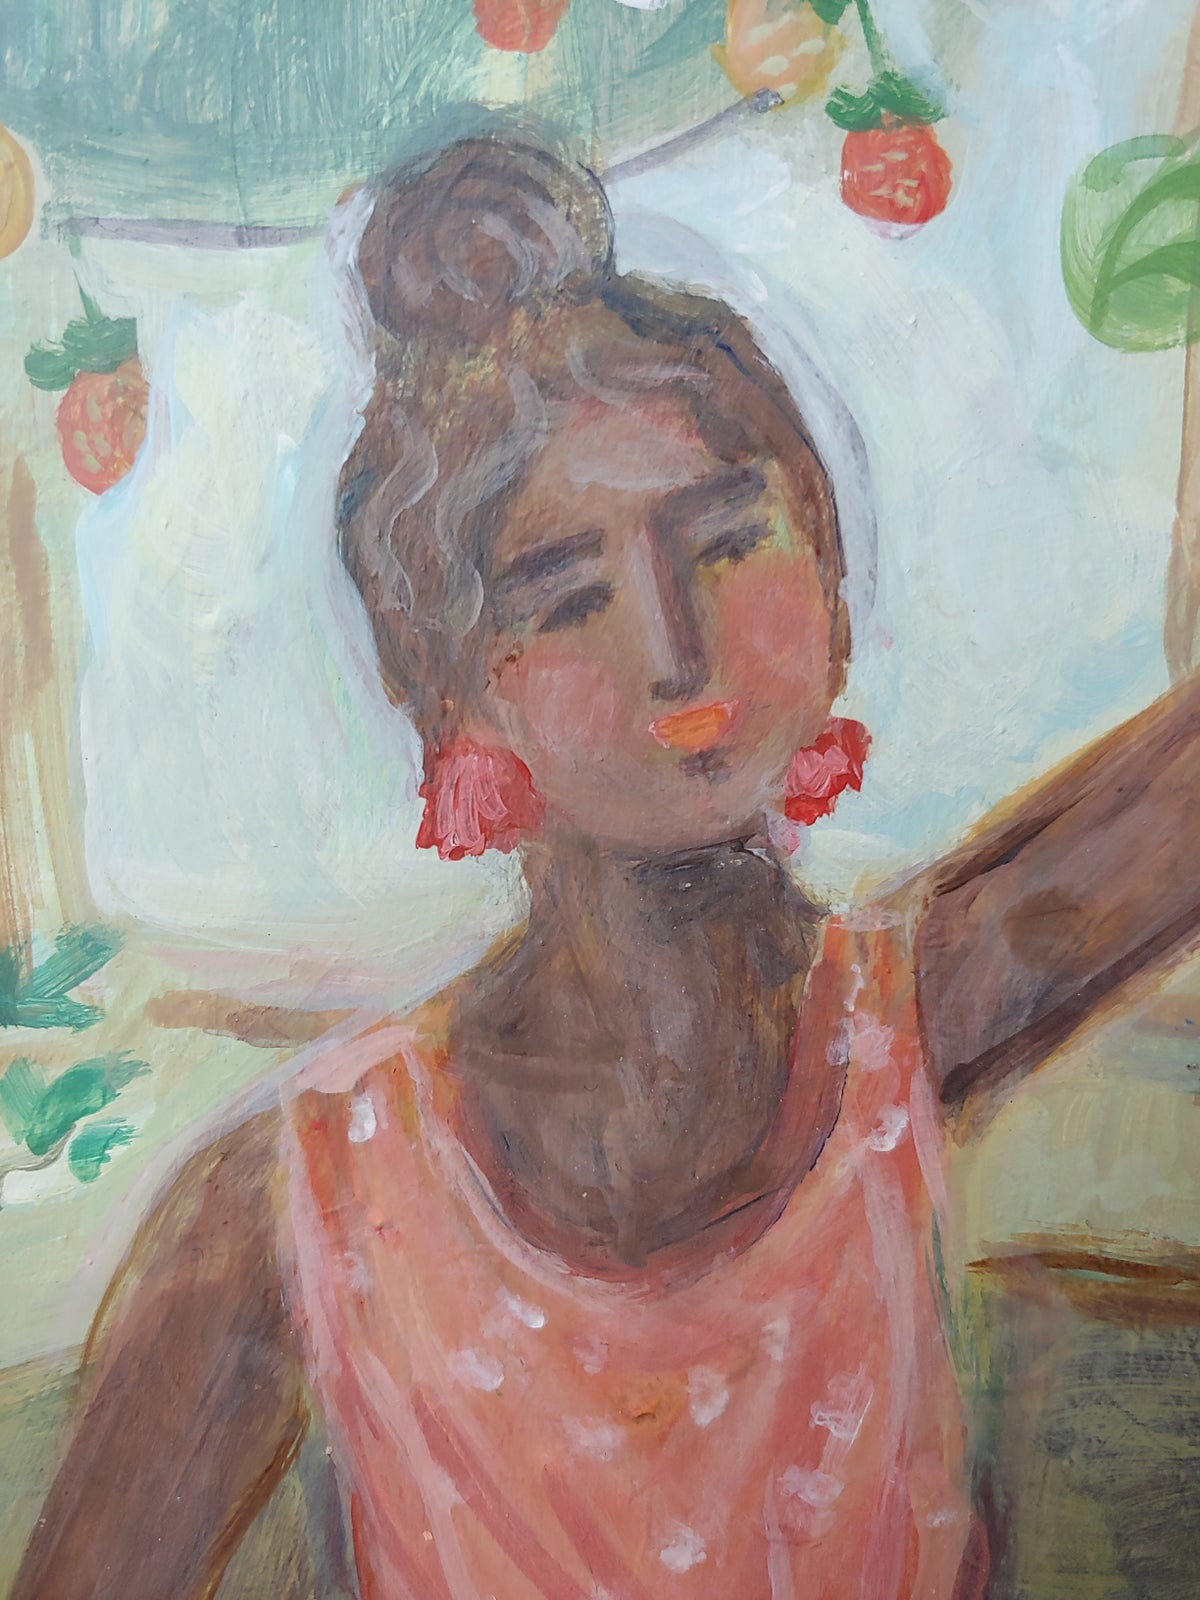 Image of Greenhouse Woman 18x24 Original on wood cradle board